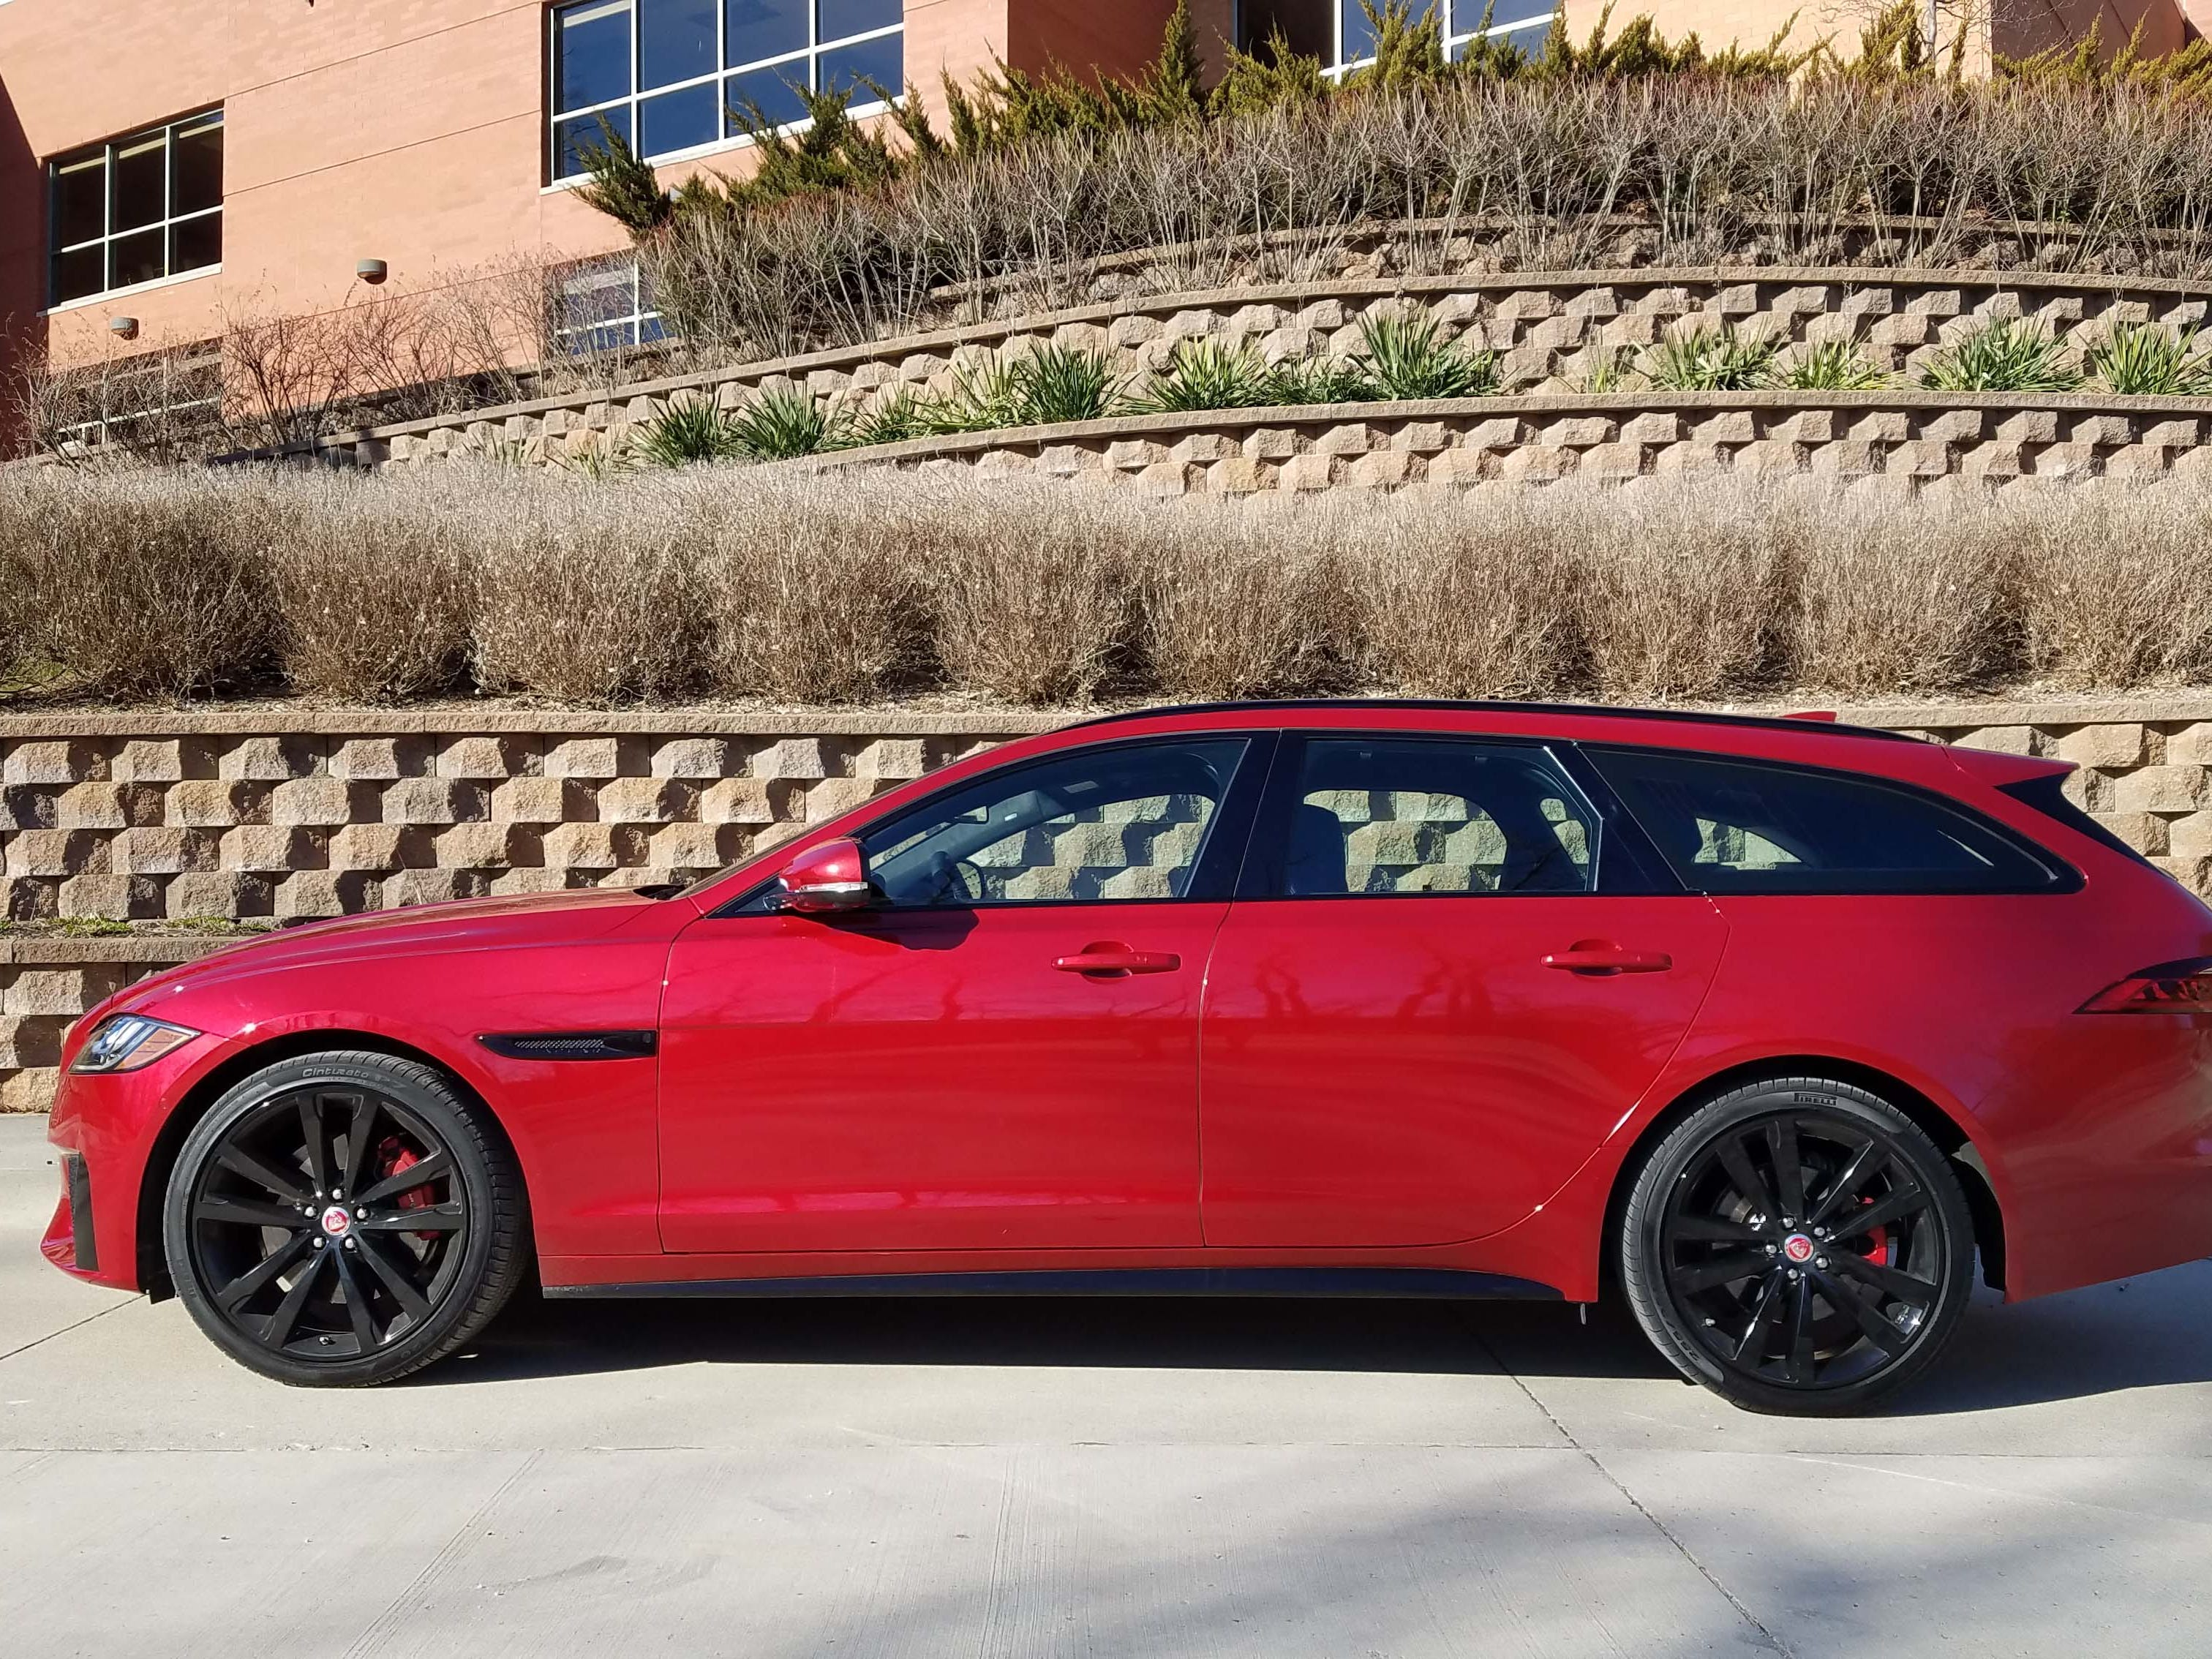 The sleek Jaguar XF Sportbrake is a headturner. While its 380 horses can't compete with the Mercedes' 603, its $84,815 is more palatable than the German's ambitious $140,730.